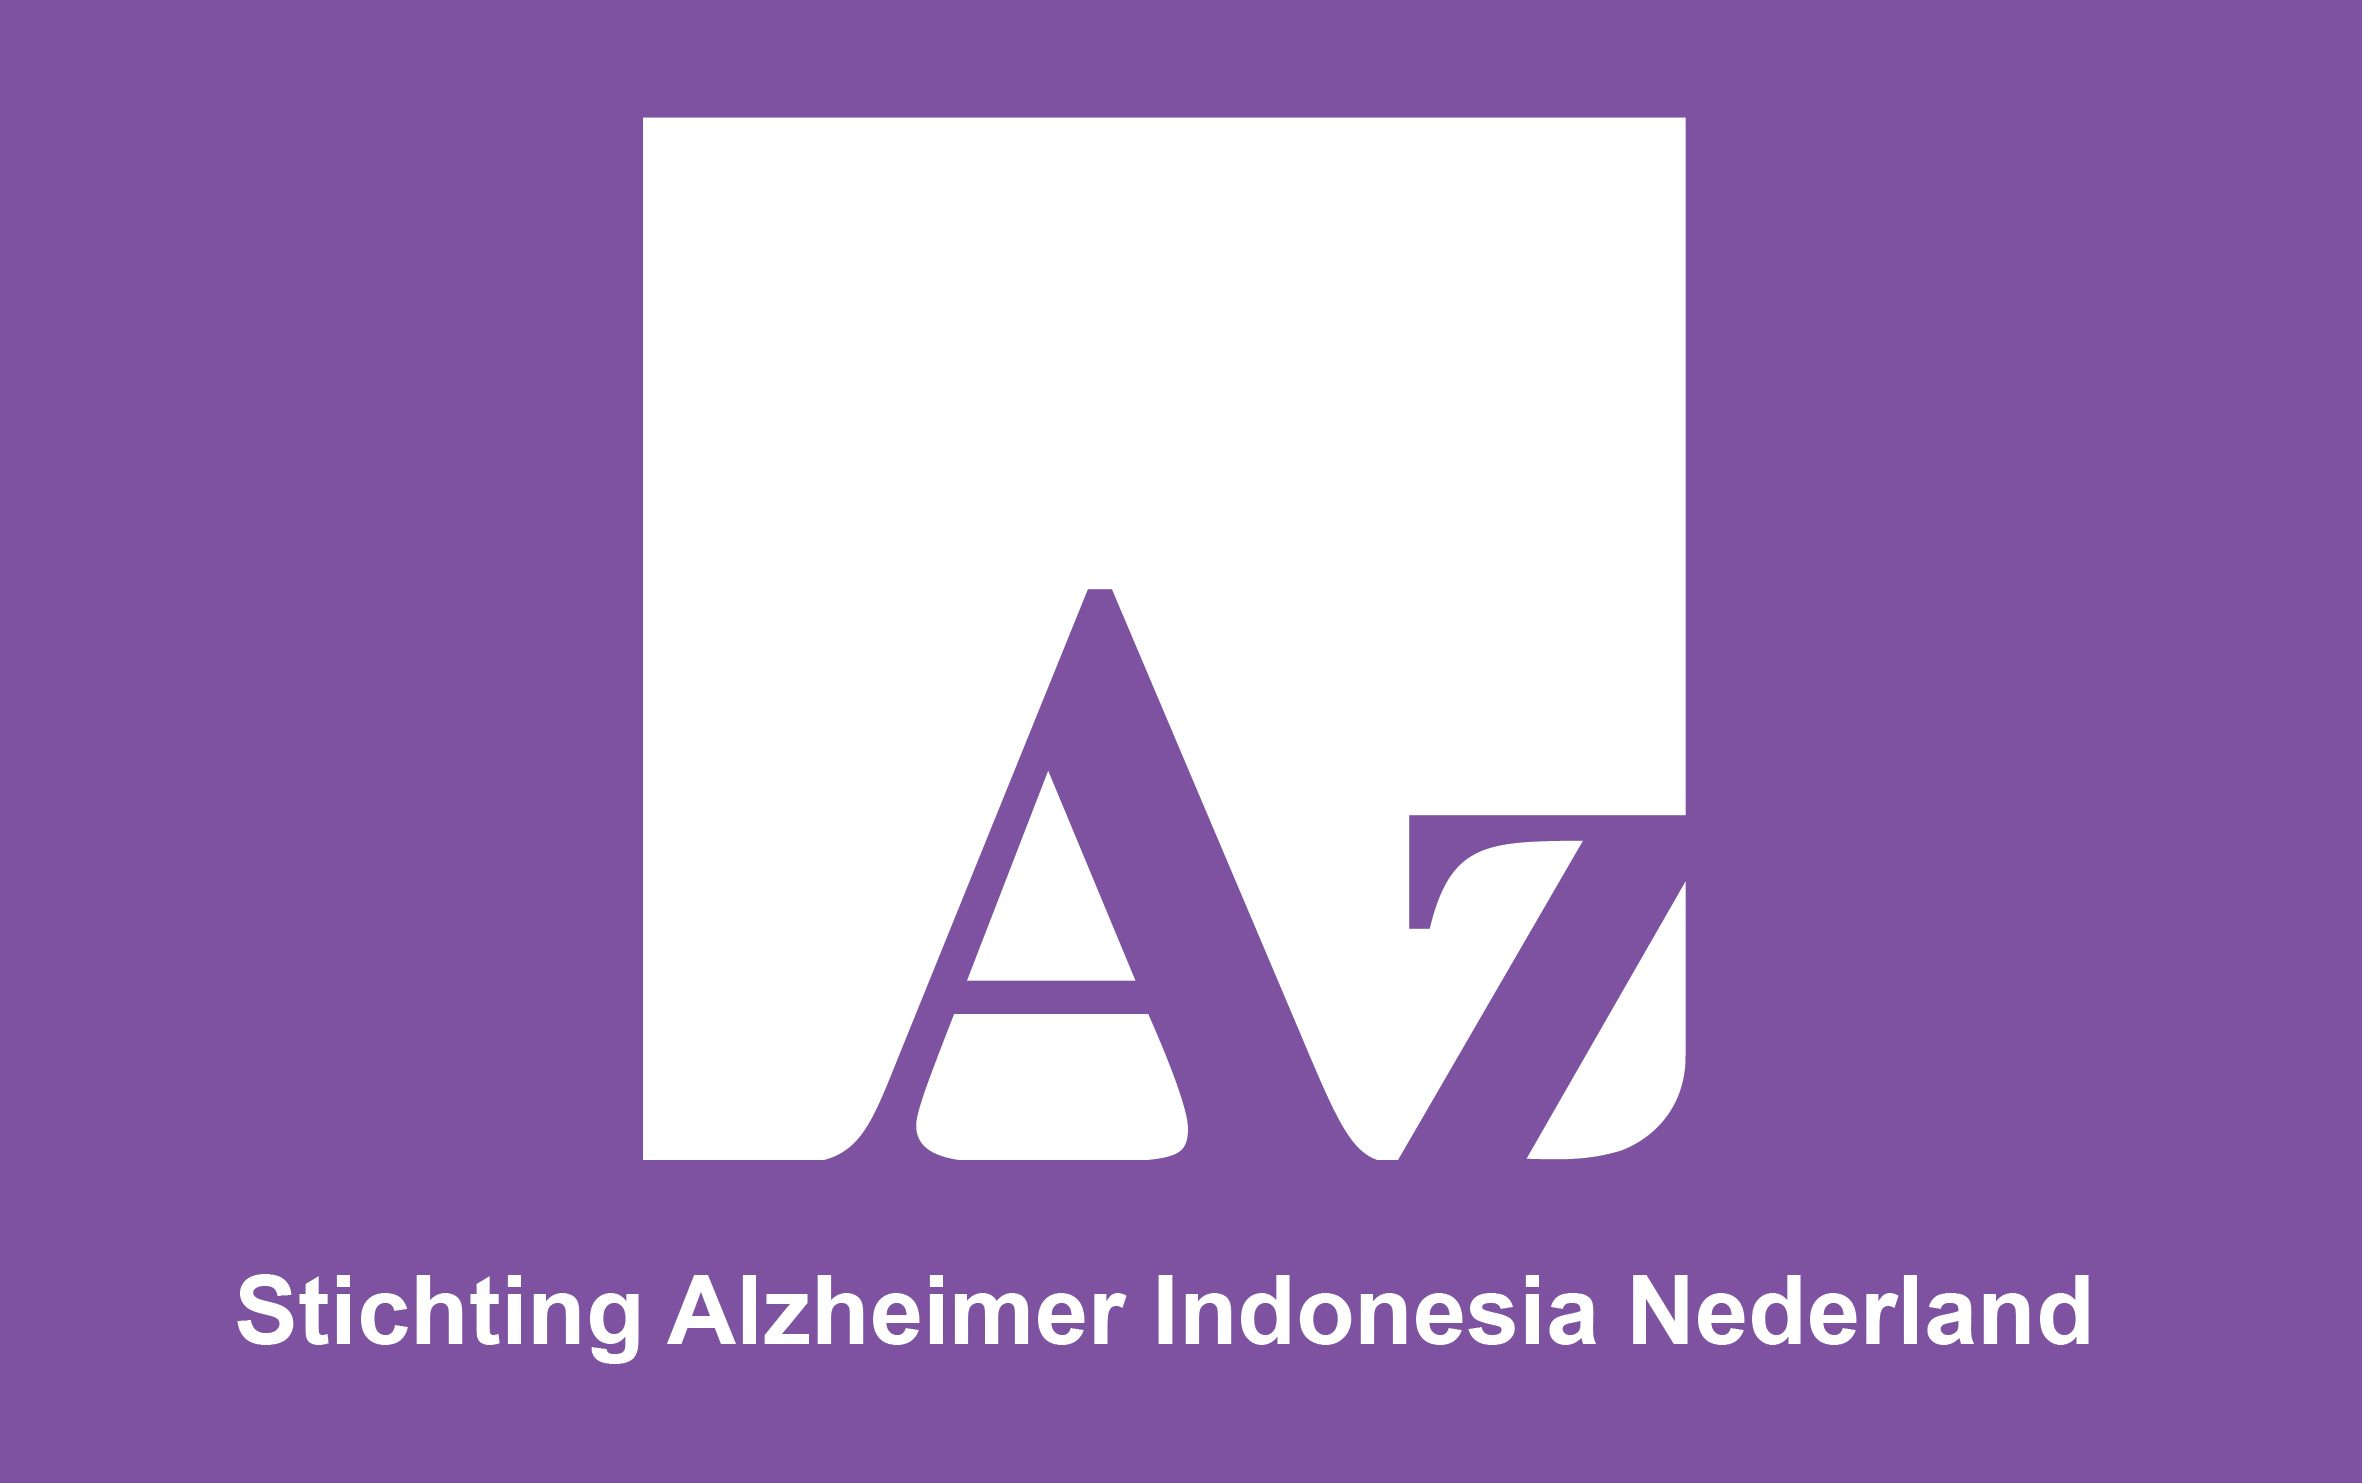 Stichting Alzheimer Indonesia Nederland